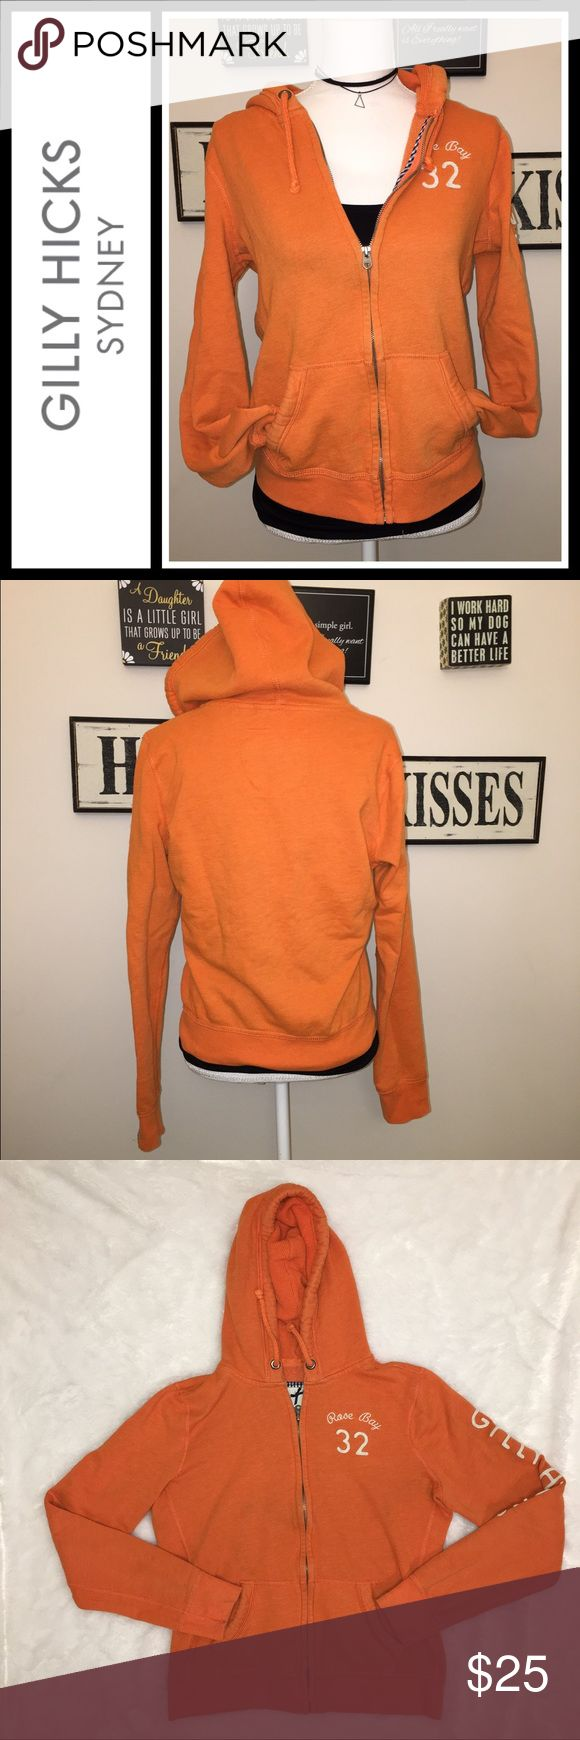 Gilly Hicks (Hollister) Orange Hoodie EUC, pre loved but no flaws - Gilly Hicks Hoodie - size large, runs a little small Gilly Hicks Tops Sweatshirts & Hoodies